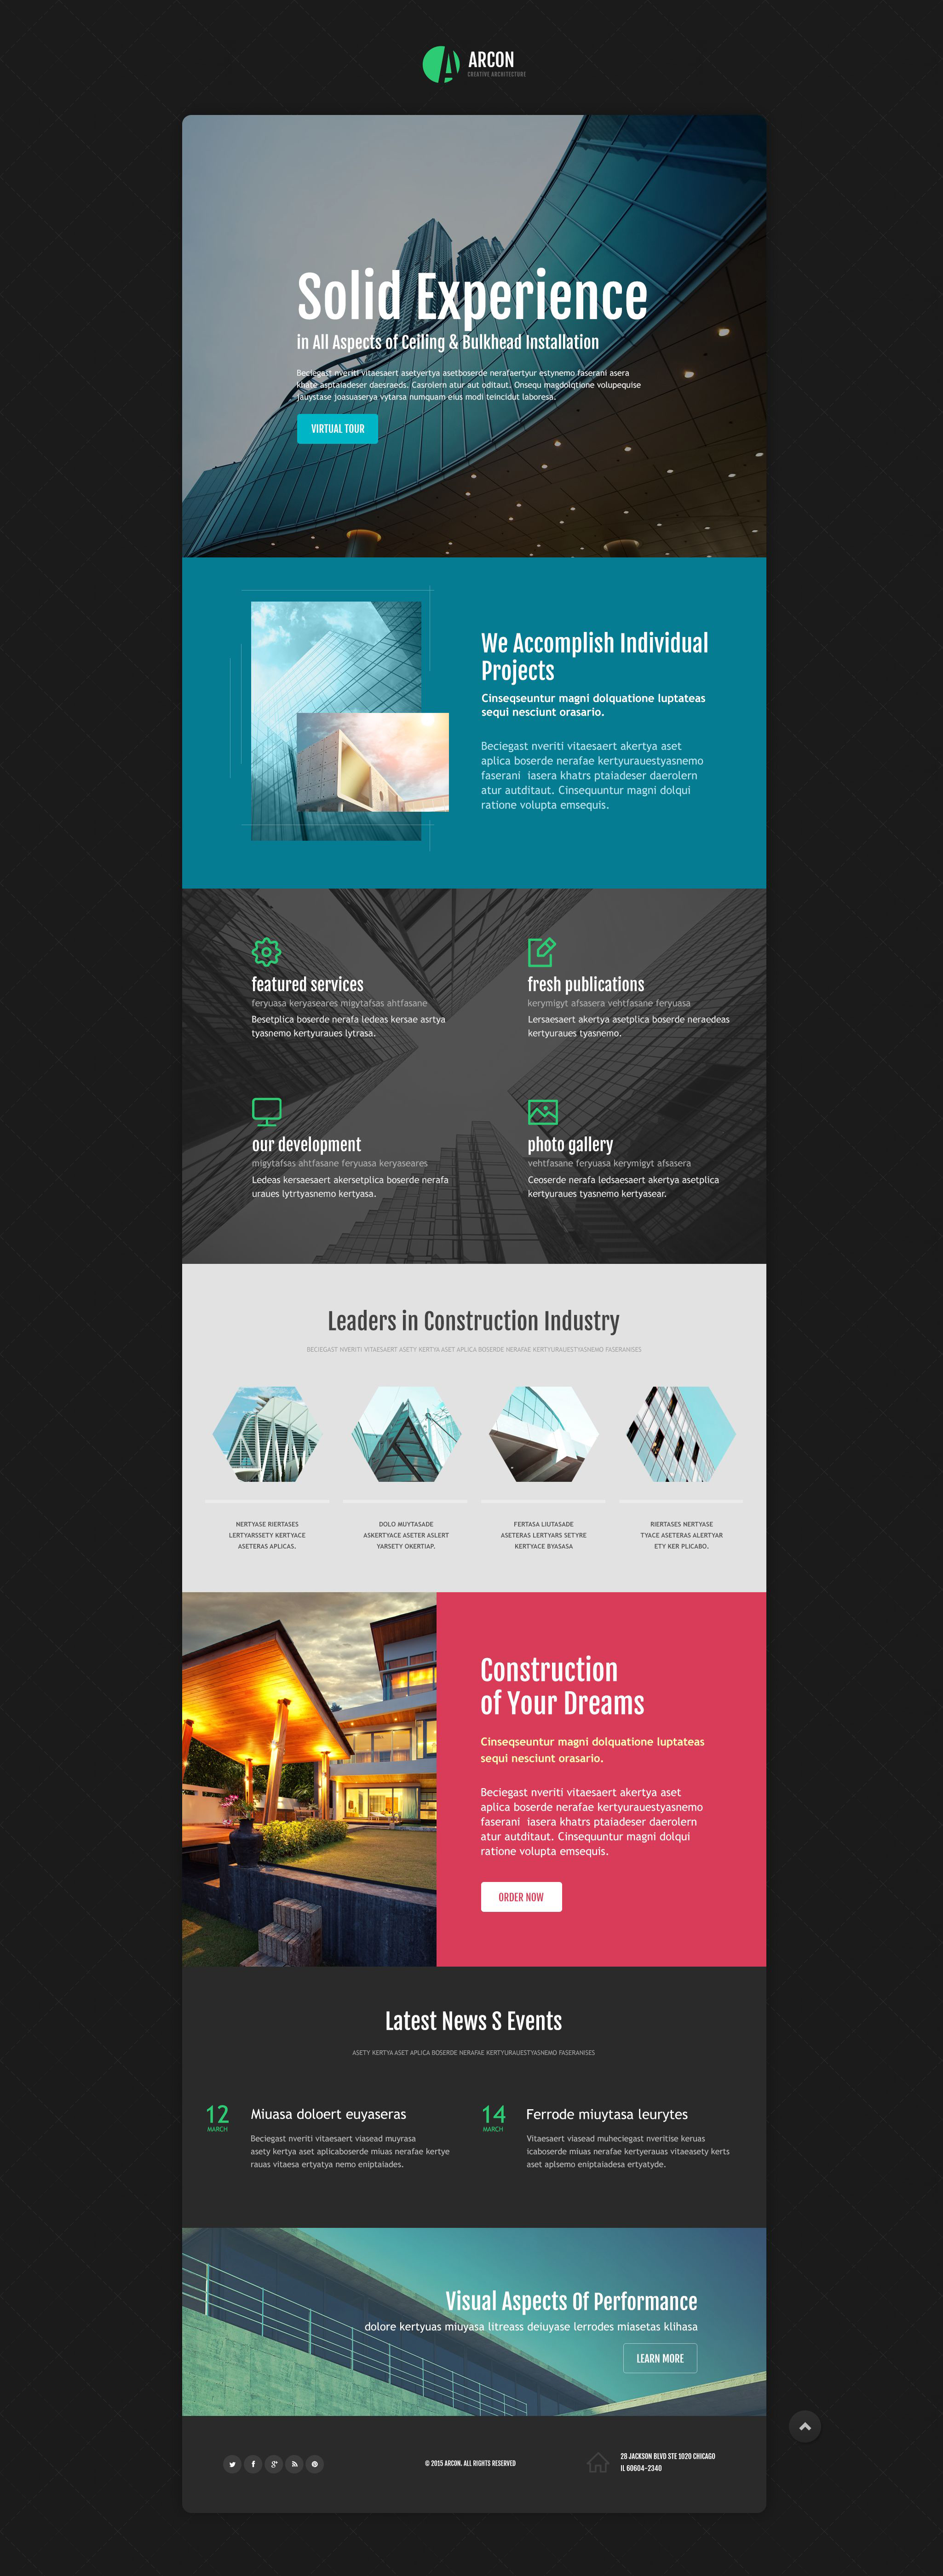 The Arcon Architecture Company Landing Page Template Design 53667, one of the best Landing Page templates of its kind (architecture, most popular), also known as arcon architecture company Landing Page template, architectural company bureau Landing Page template, buildings Landing Page template, technology Landing Page template, innovation Landing Page template, skyscrapers Landing Page template, projects Landing Page template, constructions Landing Page template, houses Landing Page template, work Landing Page template, team Landing Page template, strategy Landing Page template, services Landing Page template, support Landing Page template, planning Landing Page template, custom design Landing Page template, enterprise Landing Page template, clients Landing Page template, partners Landing Page template, esteem and related with arcon architecture company, architectural company bureau, buildings, technology, innovation, skyscrapers, projects, constructions, houses, work, team, strategy, services, support, planning, custom design, enterprise, clients, partners, esteem, etc.